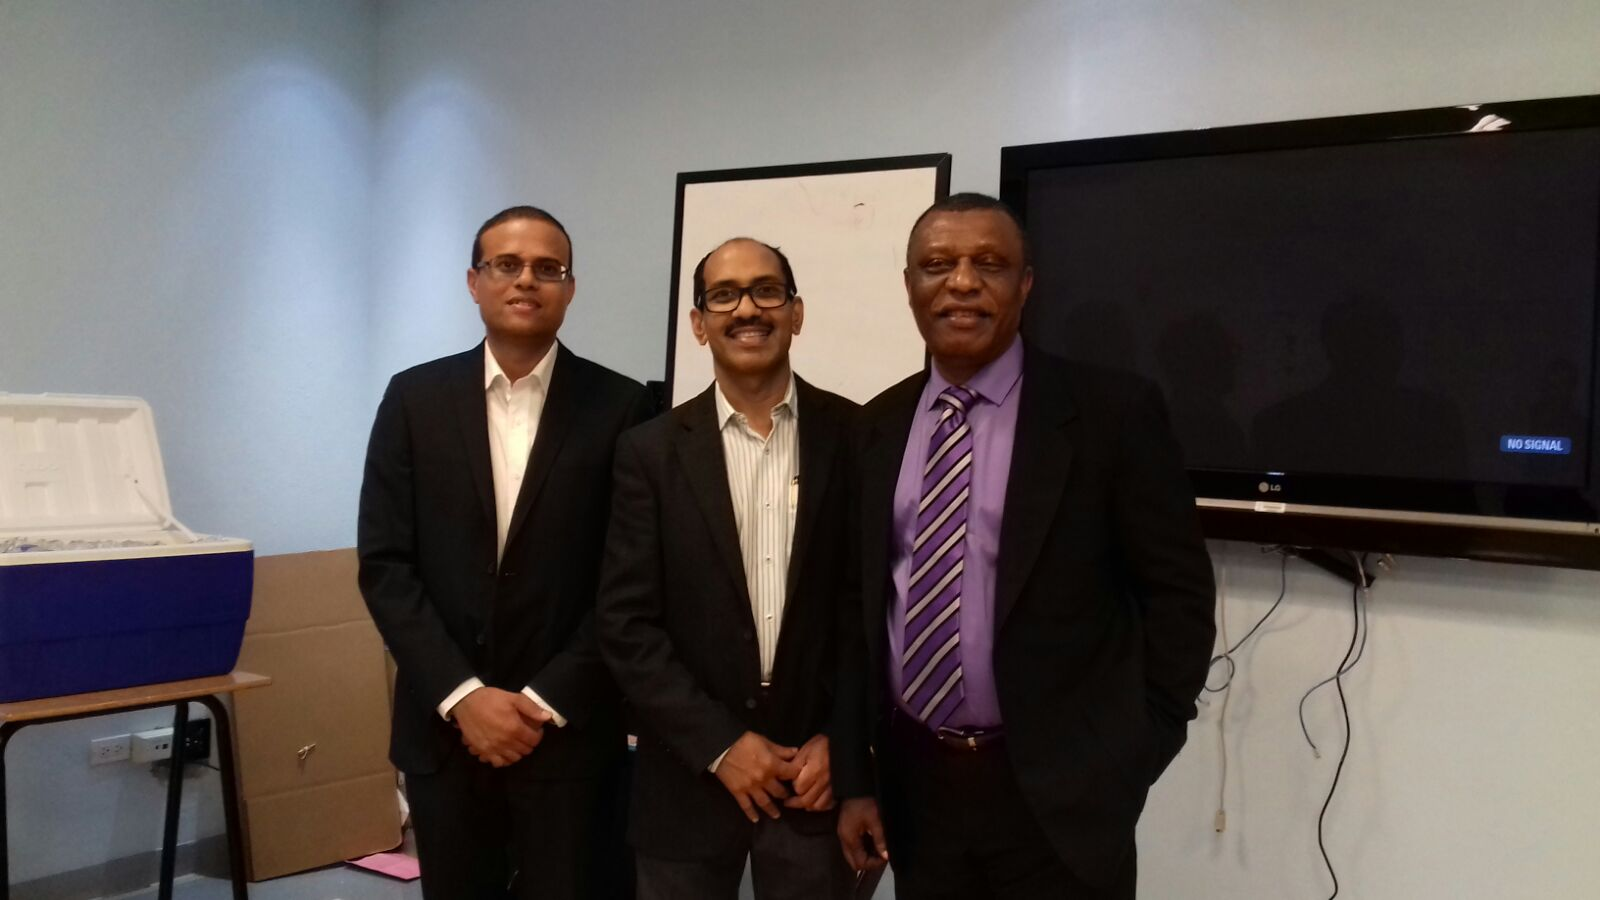 From left to right: Dr. Dhruva Kumar Krishnan, Health City Cayman Islands Senior Consultant in Cardiac Anesthesiology and Intensive Care; Dr. Binoy Chattuparambil, Health City Cayman Islands Chief Cardiac Surgeon and Senior Cardiothoracic and Vascular Surgeon; and Dr. Nelson Iheonunekwu, Internal Medicine and Nephrology Specialist at the Cayman Islands Health Services Authority (HSA).